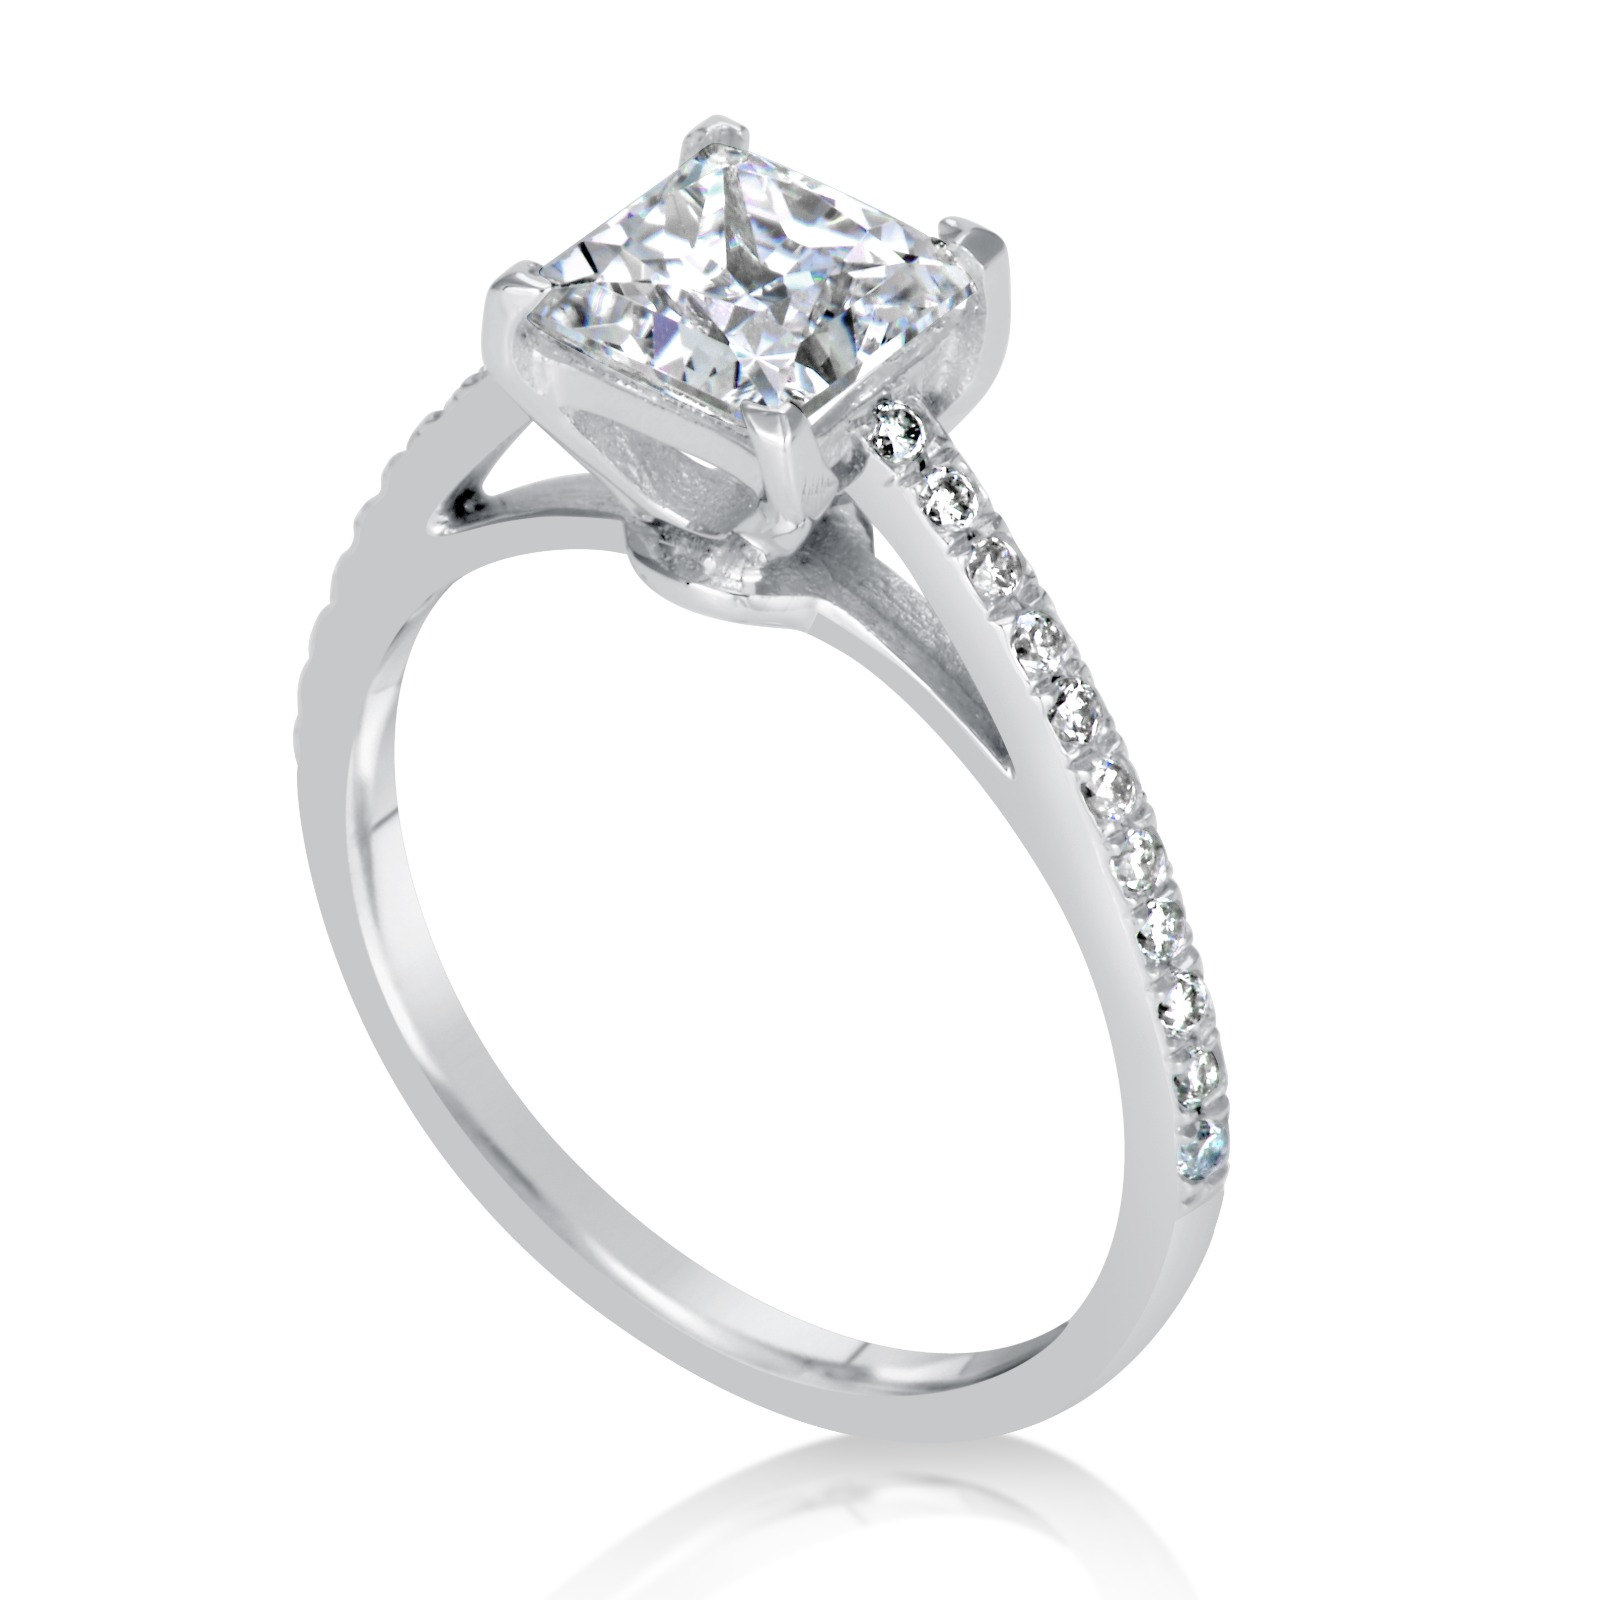 CT PRINCESS CUT DSI1 DIAMOND SOLITAIRE ENGAGEMENT RING 14K WHITE ...